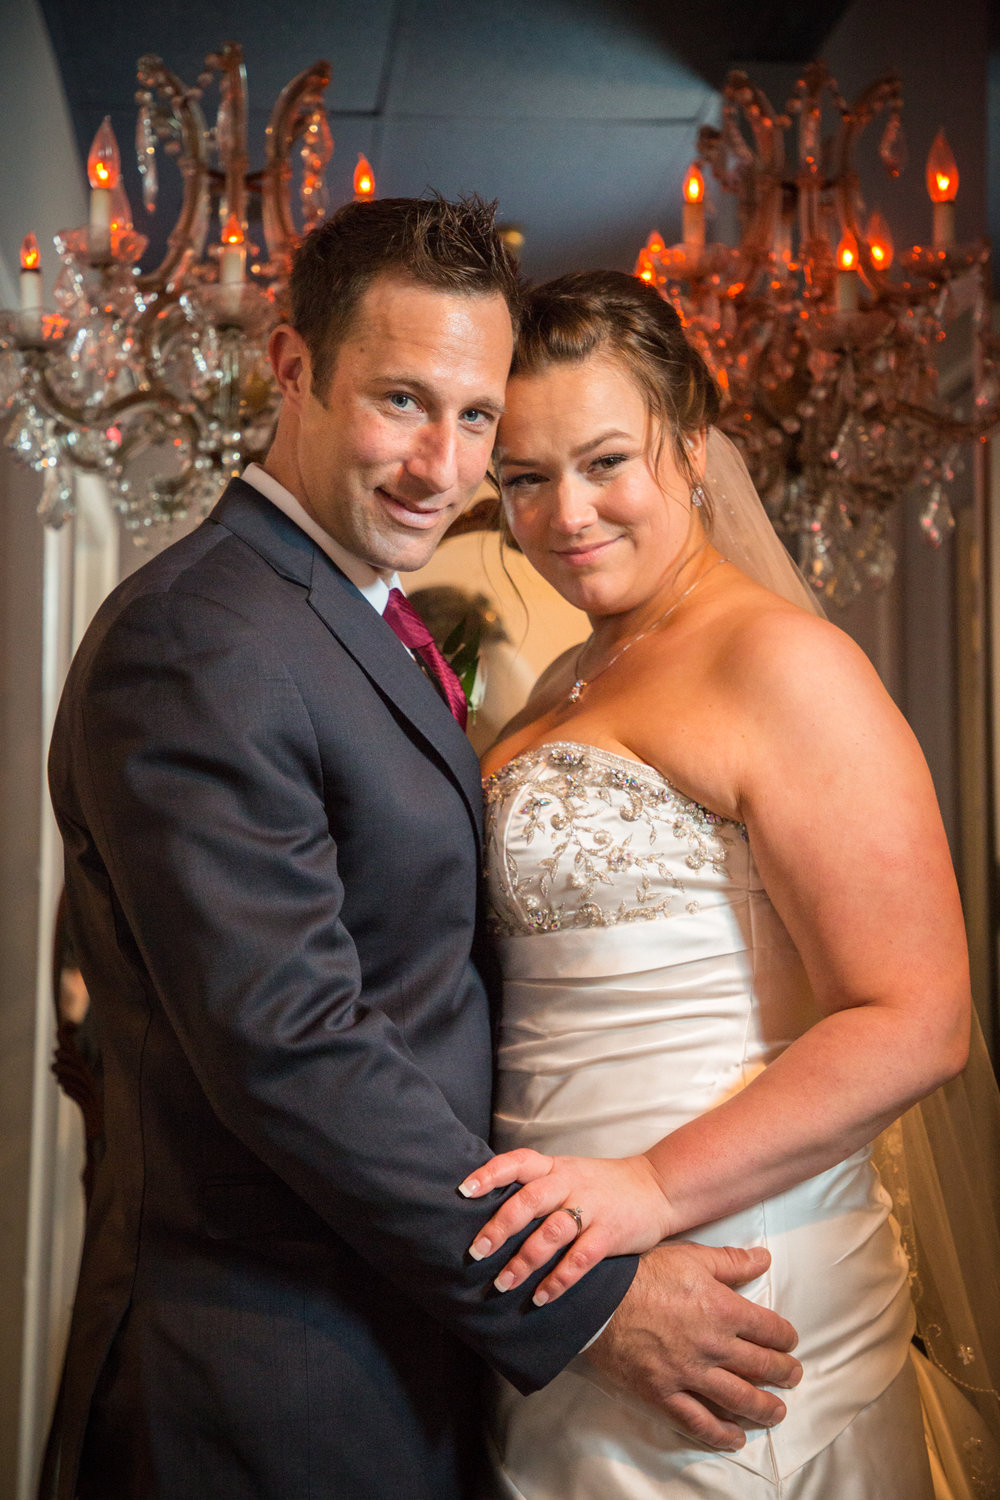 The happy couple sneak off to take a few more portraits in this amazing wedding venue in Ocean City.